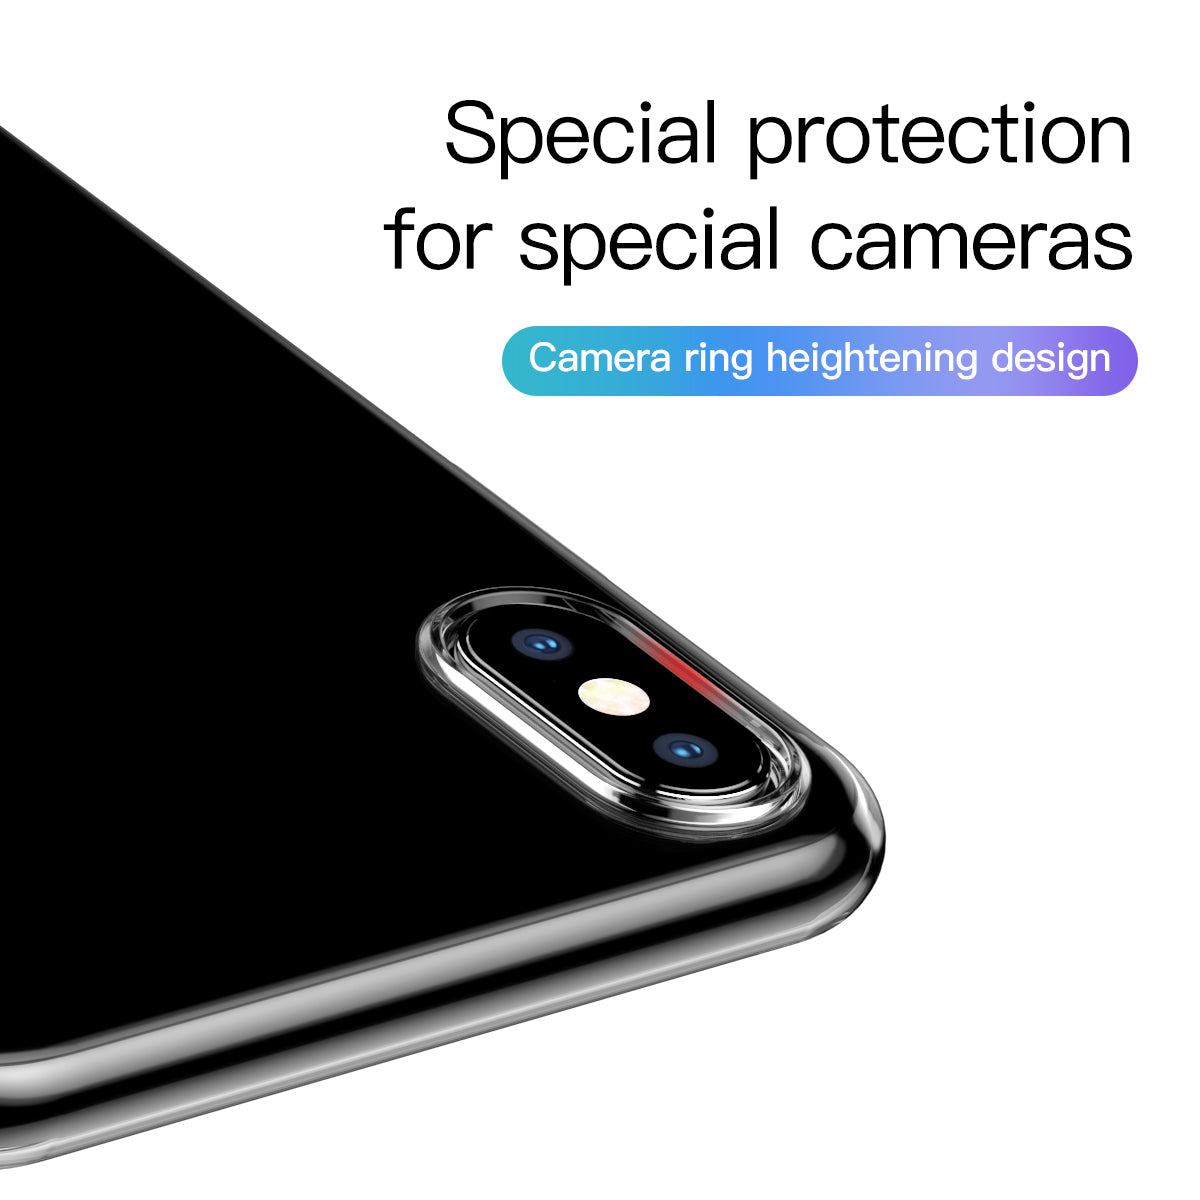 iPhone-XS-Baseus-Simple-Series-Transparent-Camera-Protection_S07W0572IY4Y.jpg